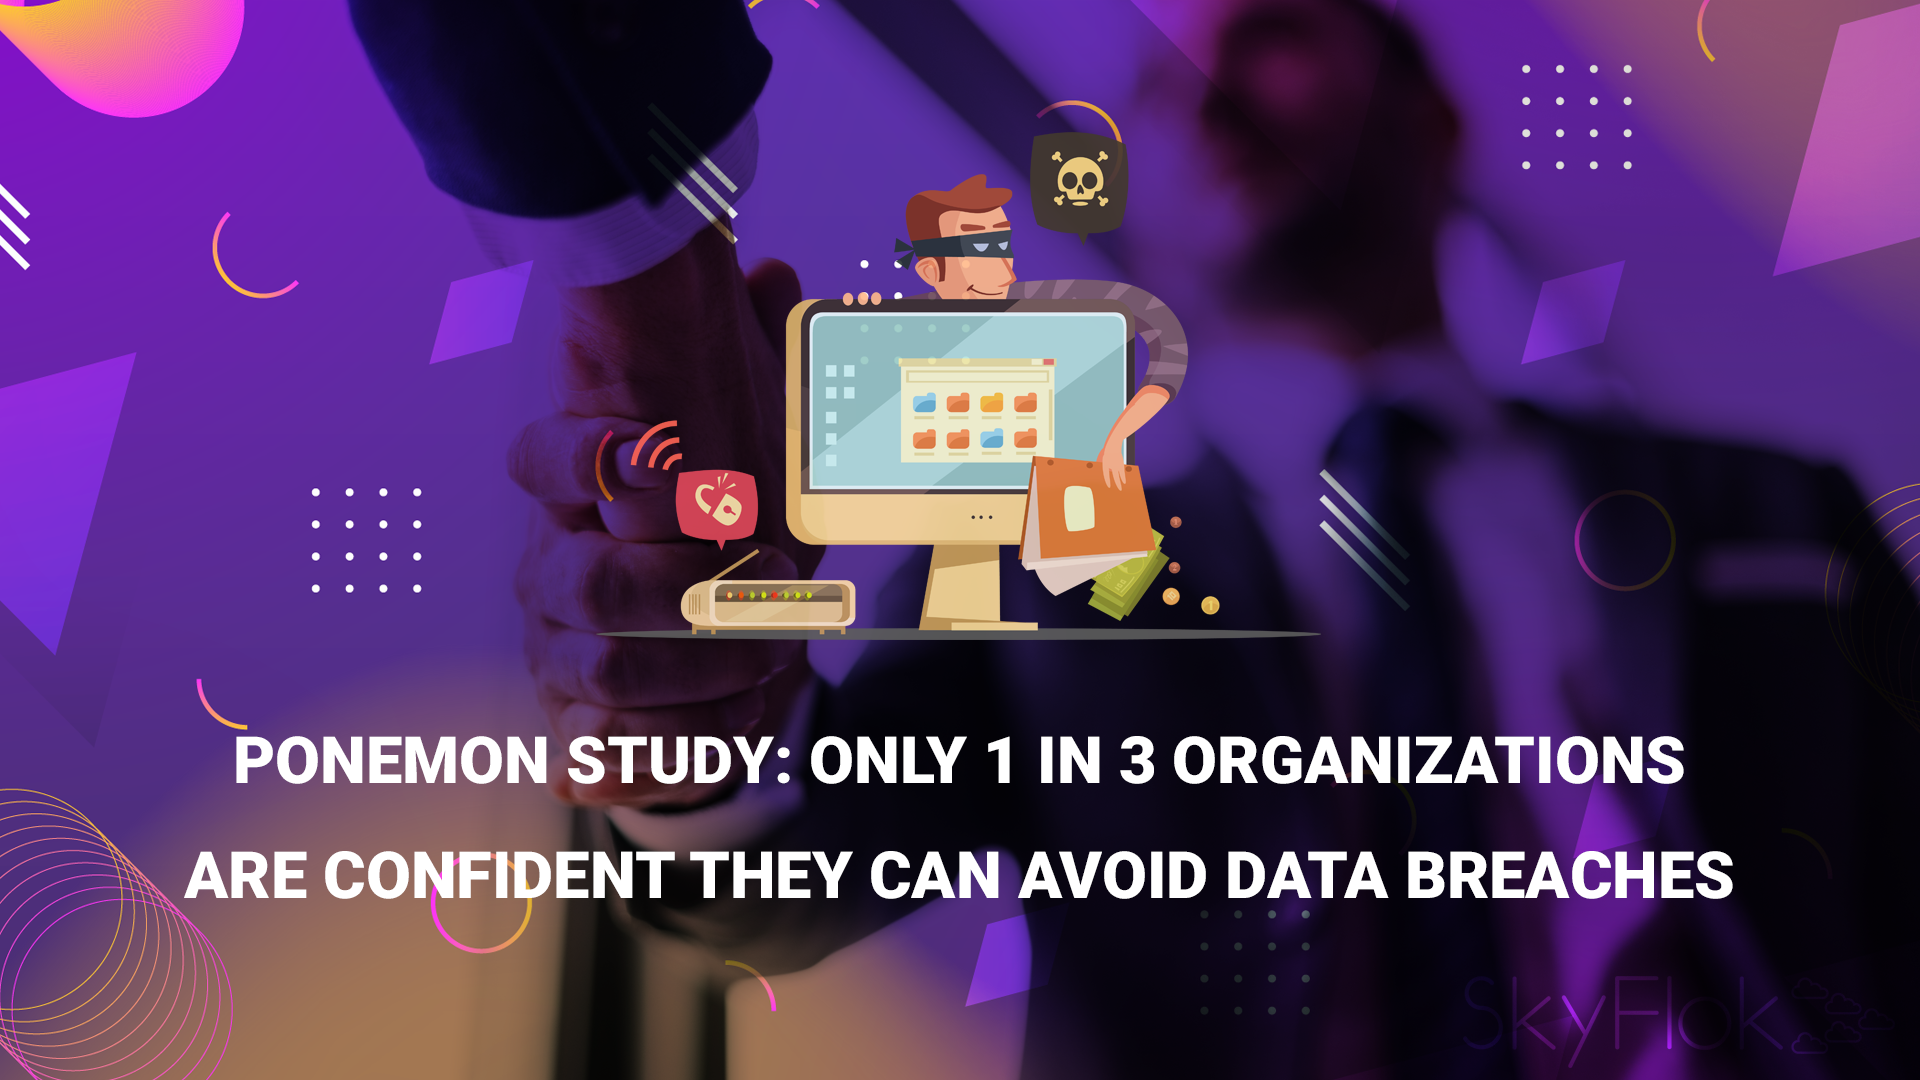 Ponemon Study: Only 1 in 3 Organizations Are Confident They Can Avoid Data Breaches